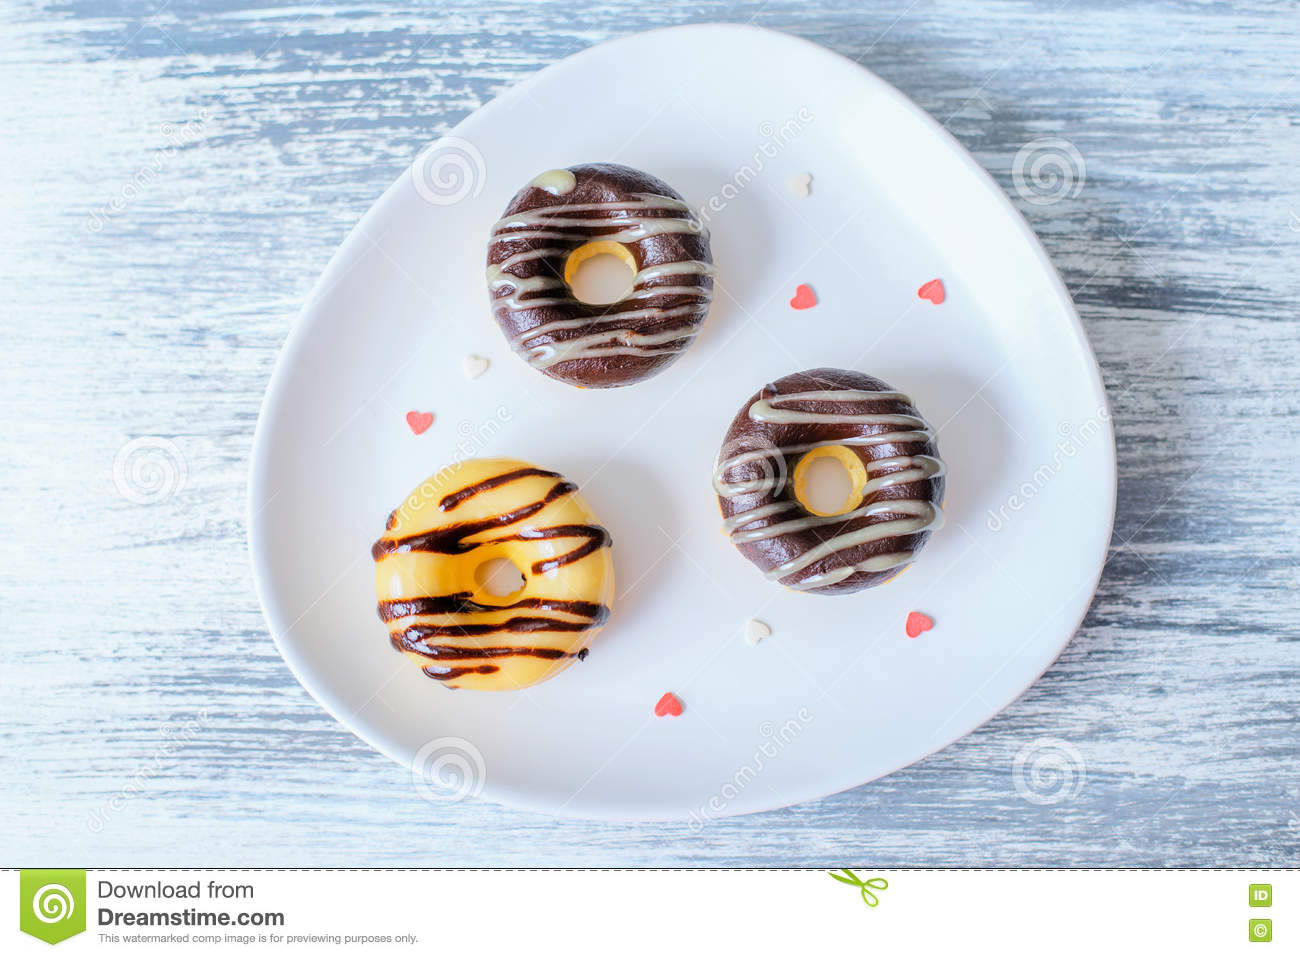 Three Donuts on plate decorated